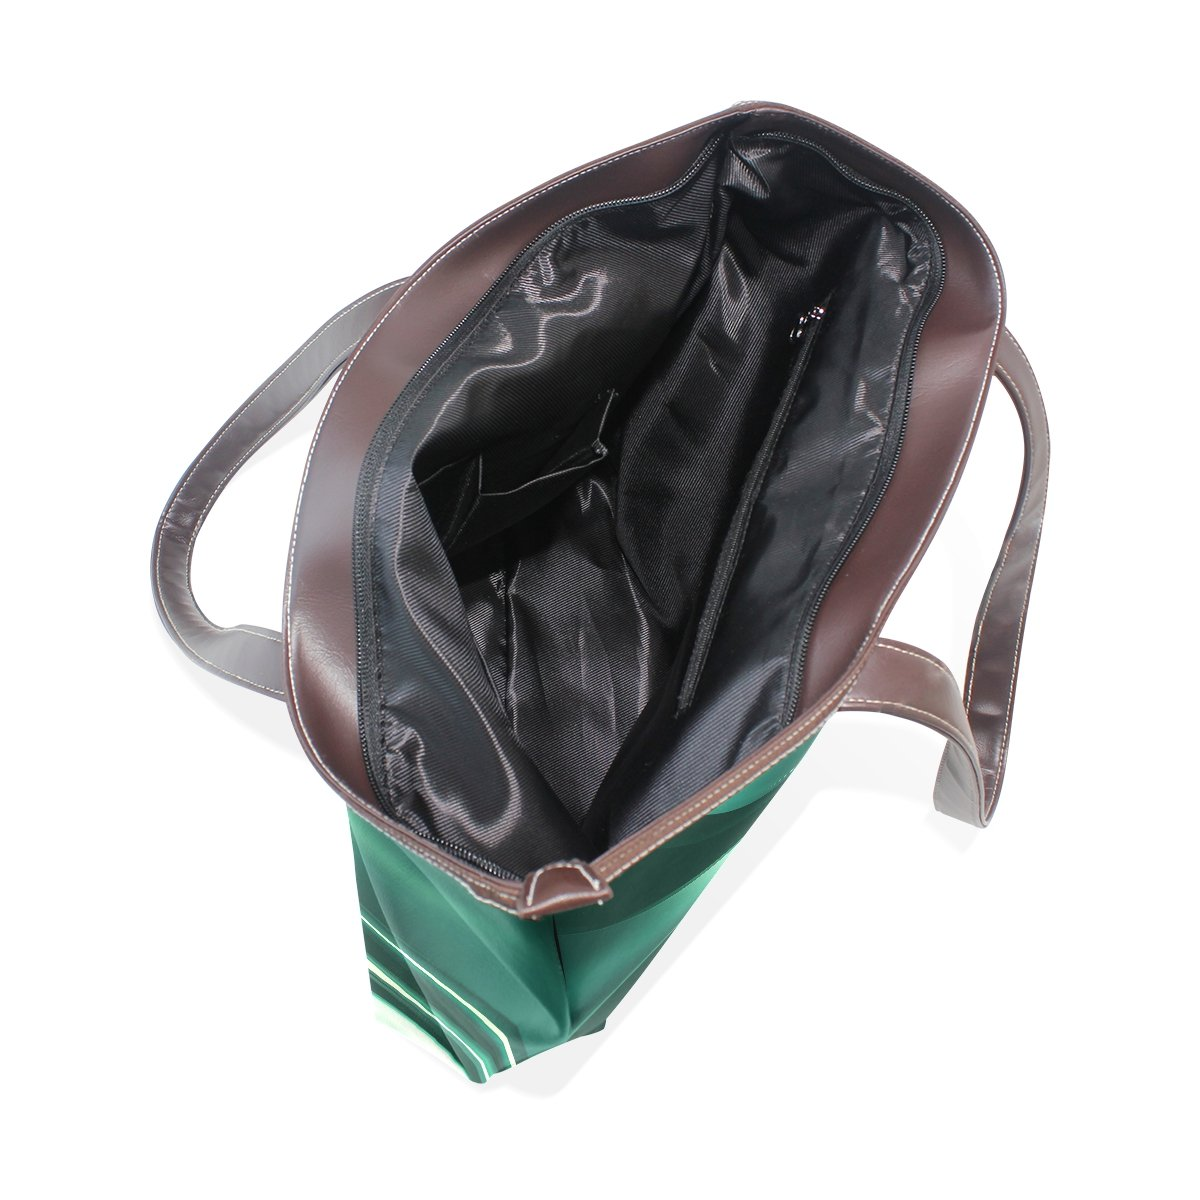 SCDS Dark Green Background PU Leather Lady Handbag Tote Bag Zipper Shoulder Bag